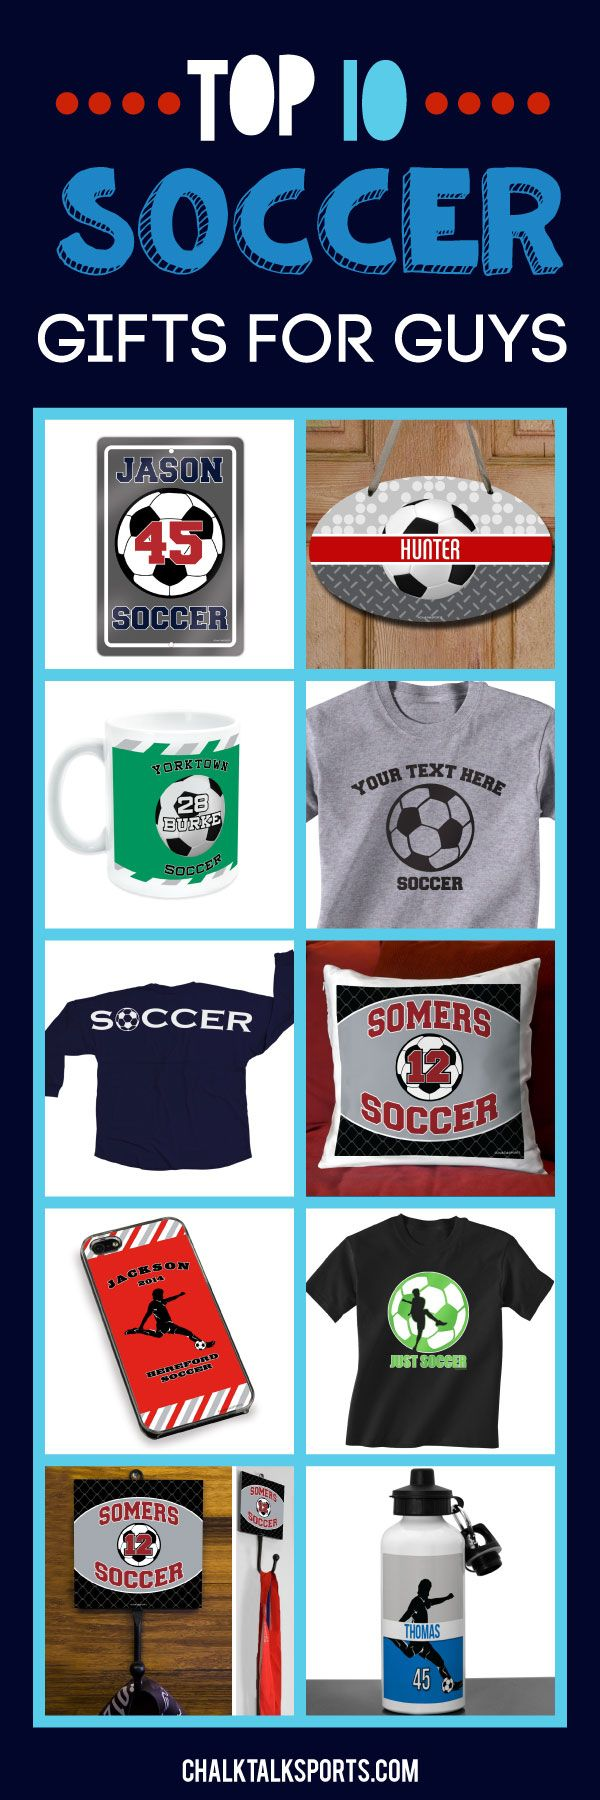 Start thinking about end of season gifts with our top 10 soccer gifts for guys!  Personalize our products to create a special gift for your favorite soccer player.  We offer tees, room decor, mugs, phone cases and more that soccer guys will love!  Only from ChalkTalkSPORTS.com!